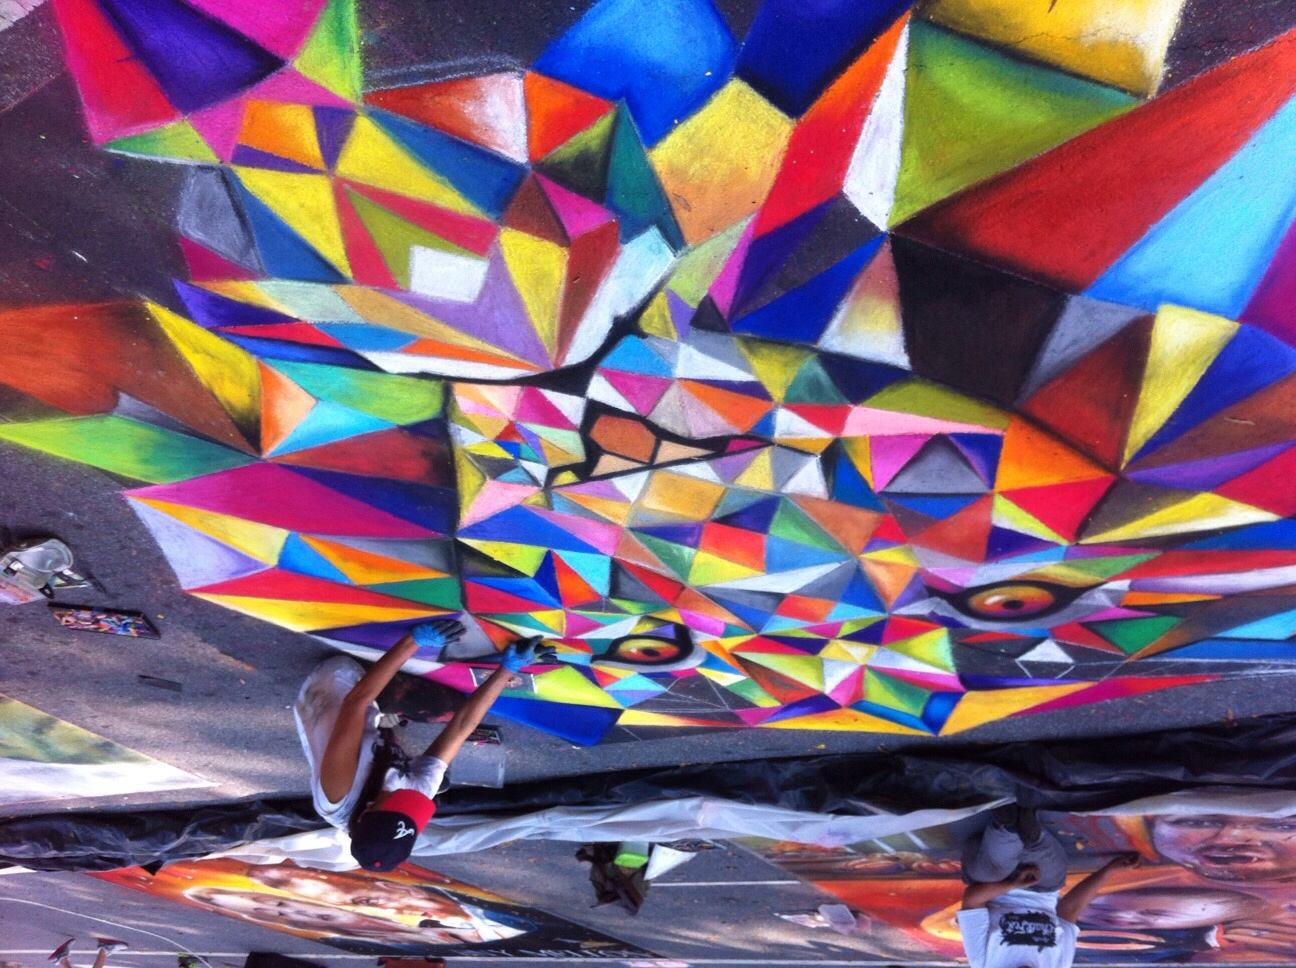 Chalk Fest 2014 with the Marietta Cobb Museum of Art